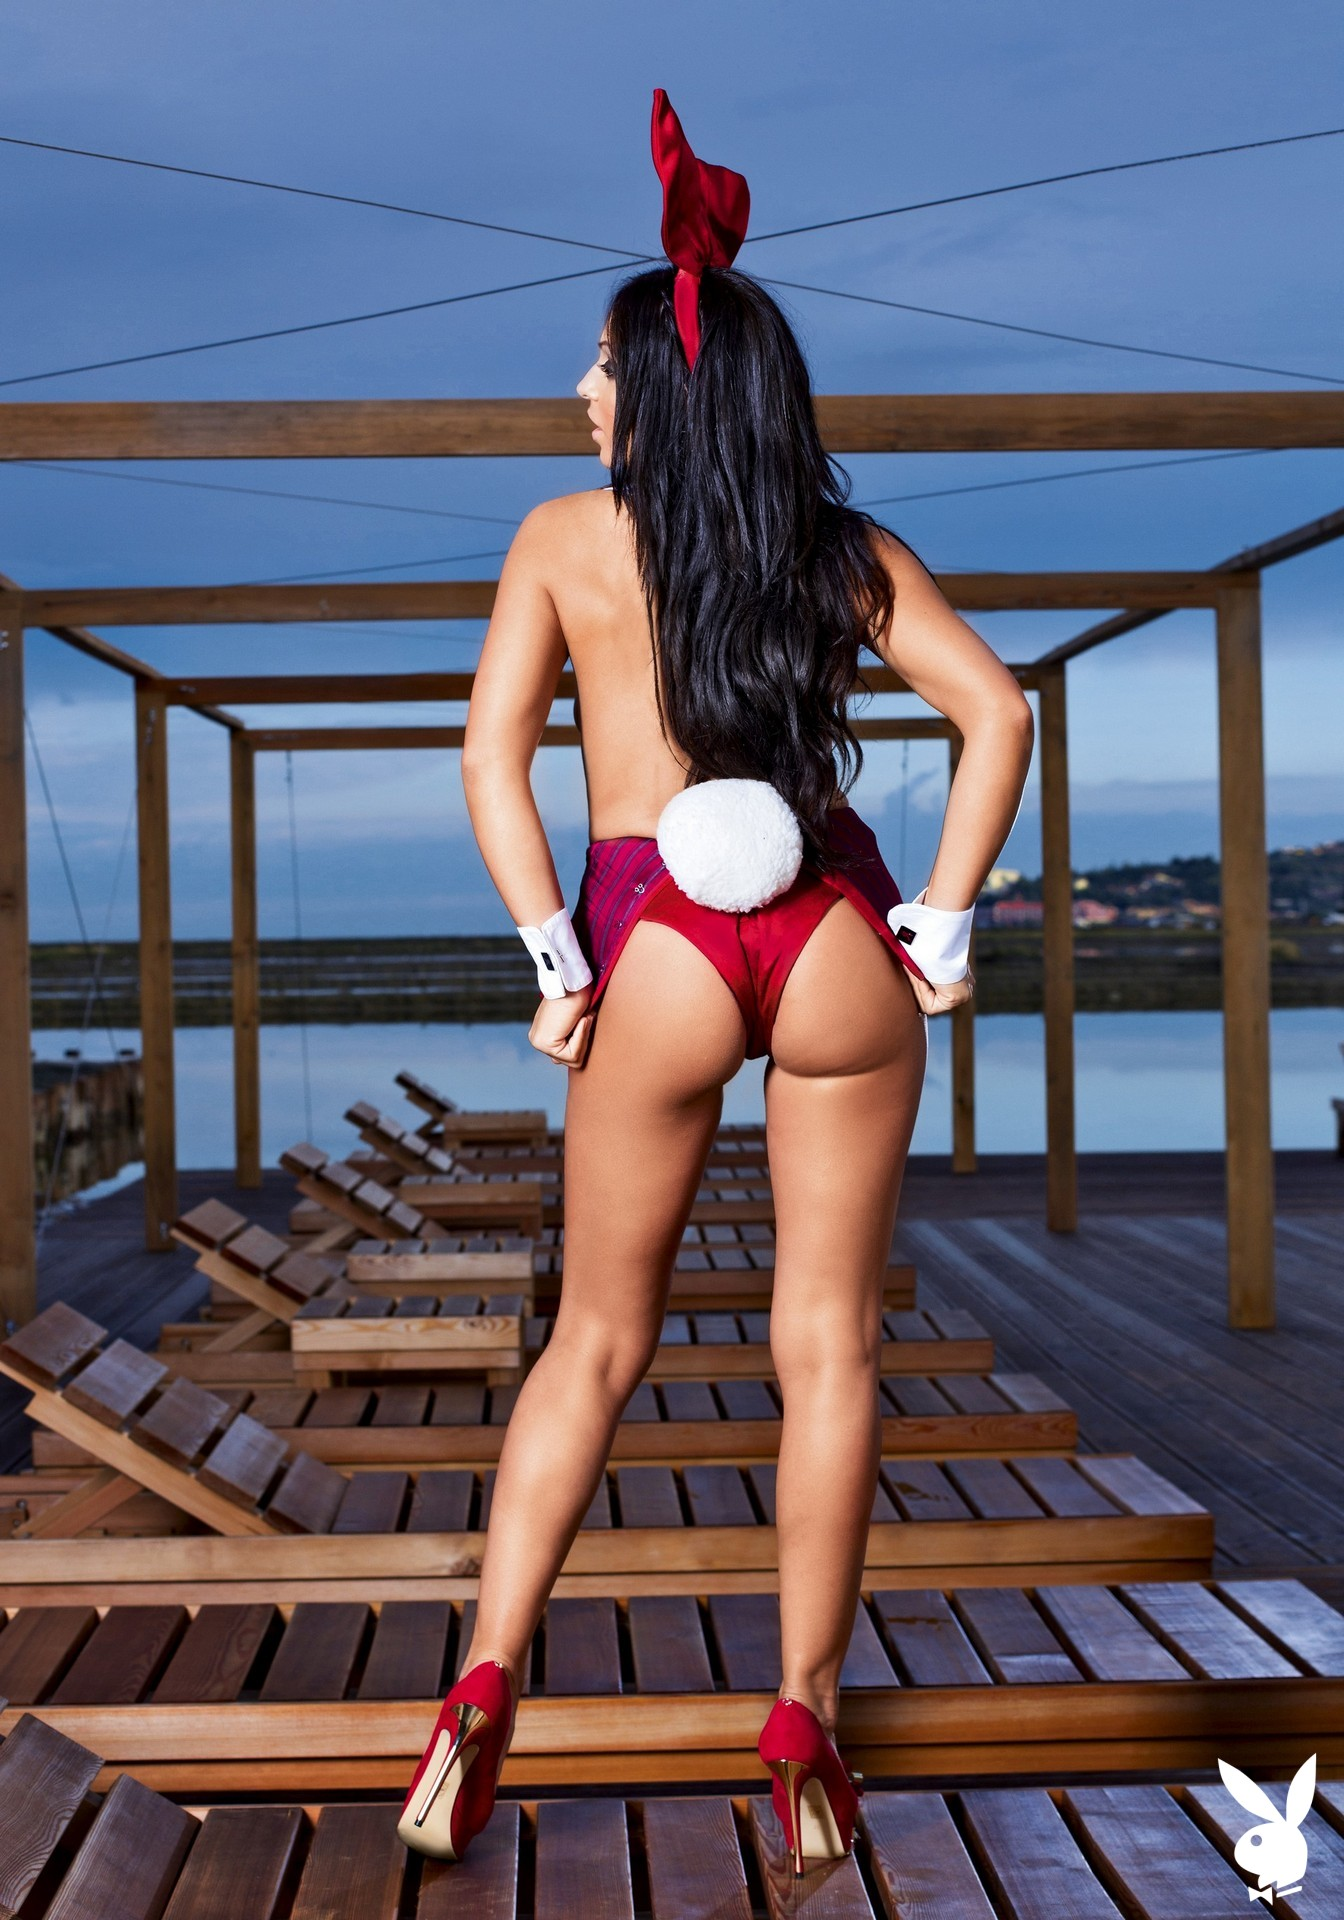 Bunny Costume, Spa, Resort, Sea Side, Deck Chair, Lounge Chair, Undressing, Stiletto Heels